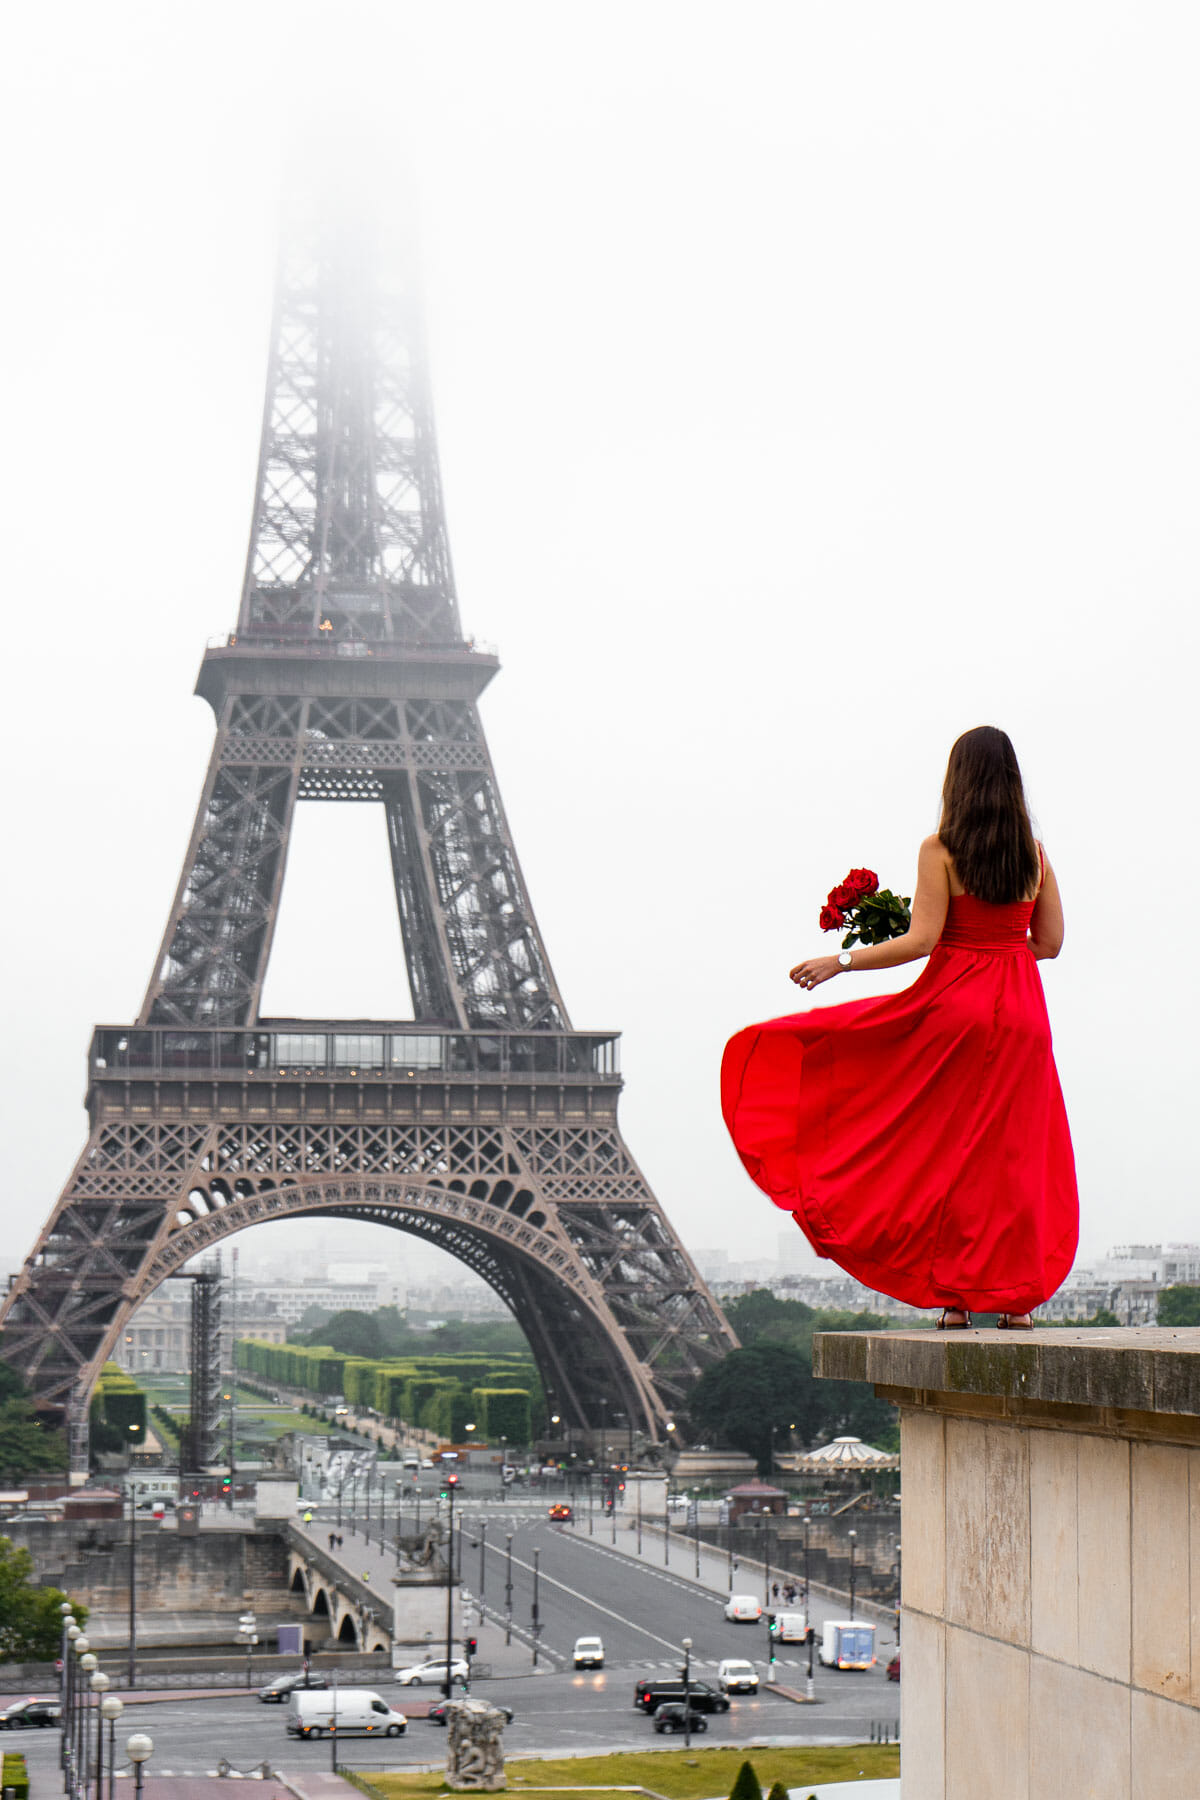 Girl in a red dress standing at Trocadero looking at the Eiffel Tower